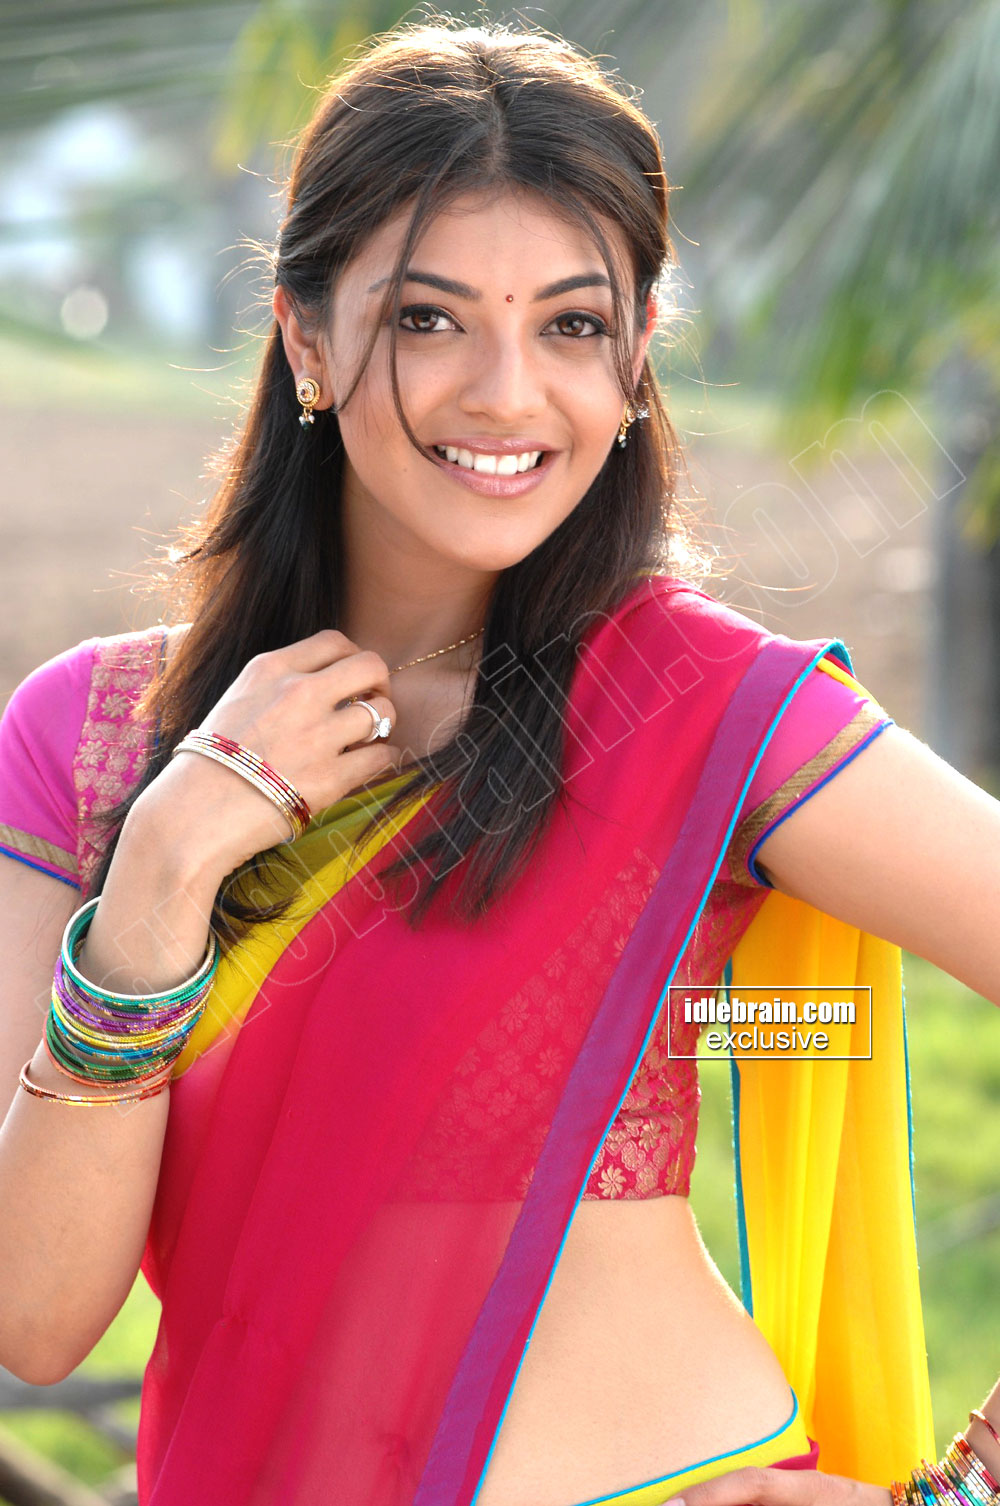 hq kaajal agarwal miss perfect figure hot stills showing ass navel boobs etc page 51. Black Bedroom Furniture Sets. Home Design Ideas